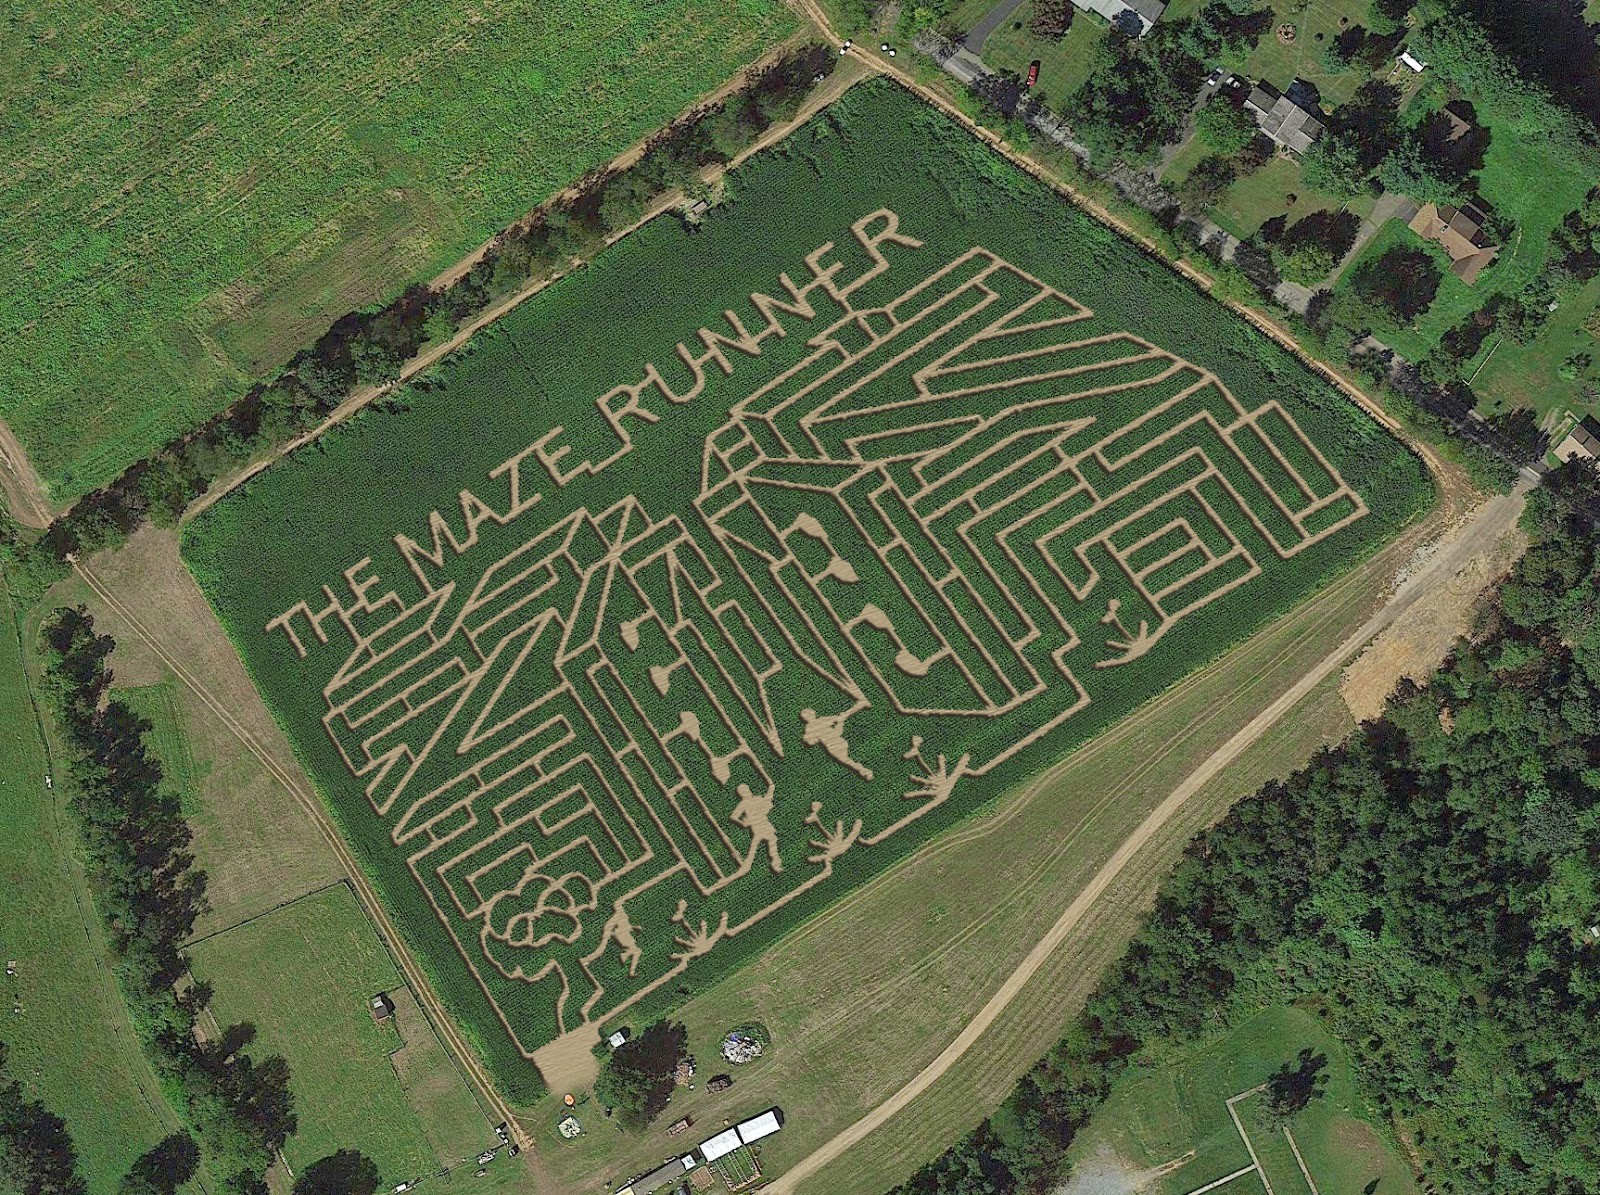 The Maze Runner Blog: Horse Sleigh Farm creates Maze